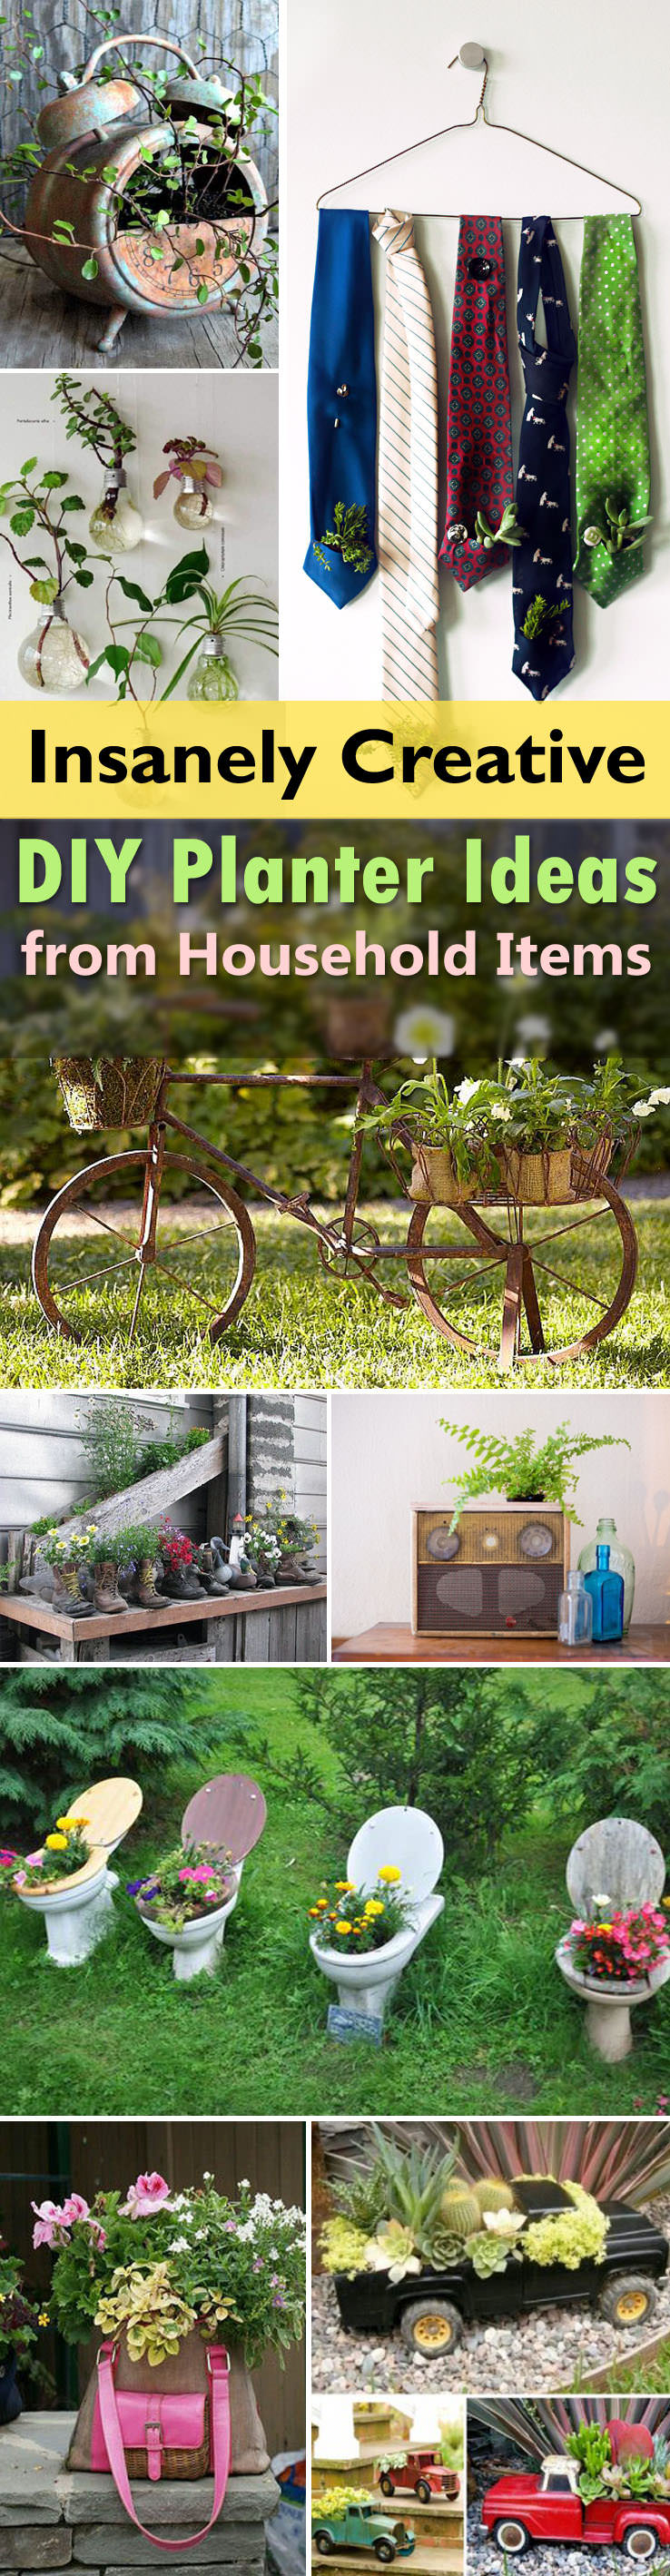 See these 29 insanely creative planter ideas that you can make from household items with their DIY tutorials.